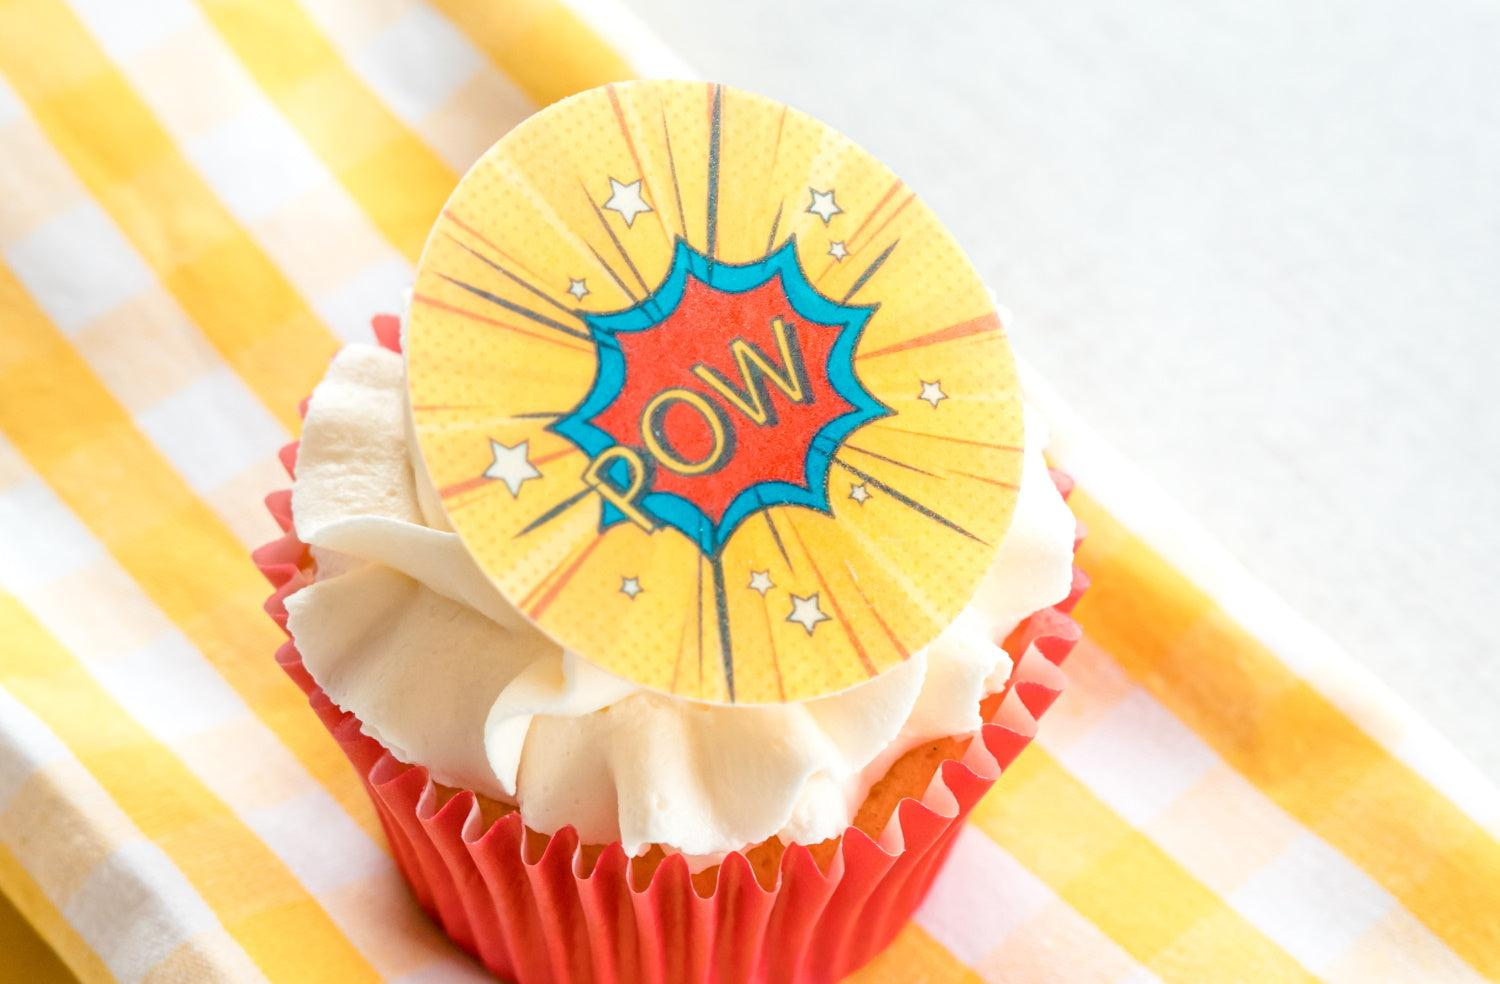 Birthday cupcake decorations with POW! superhero design